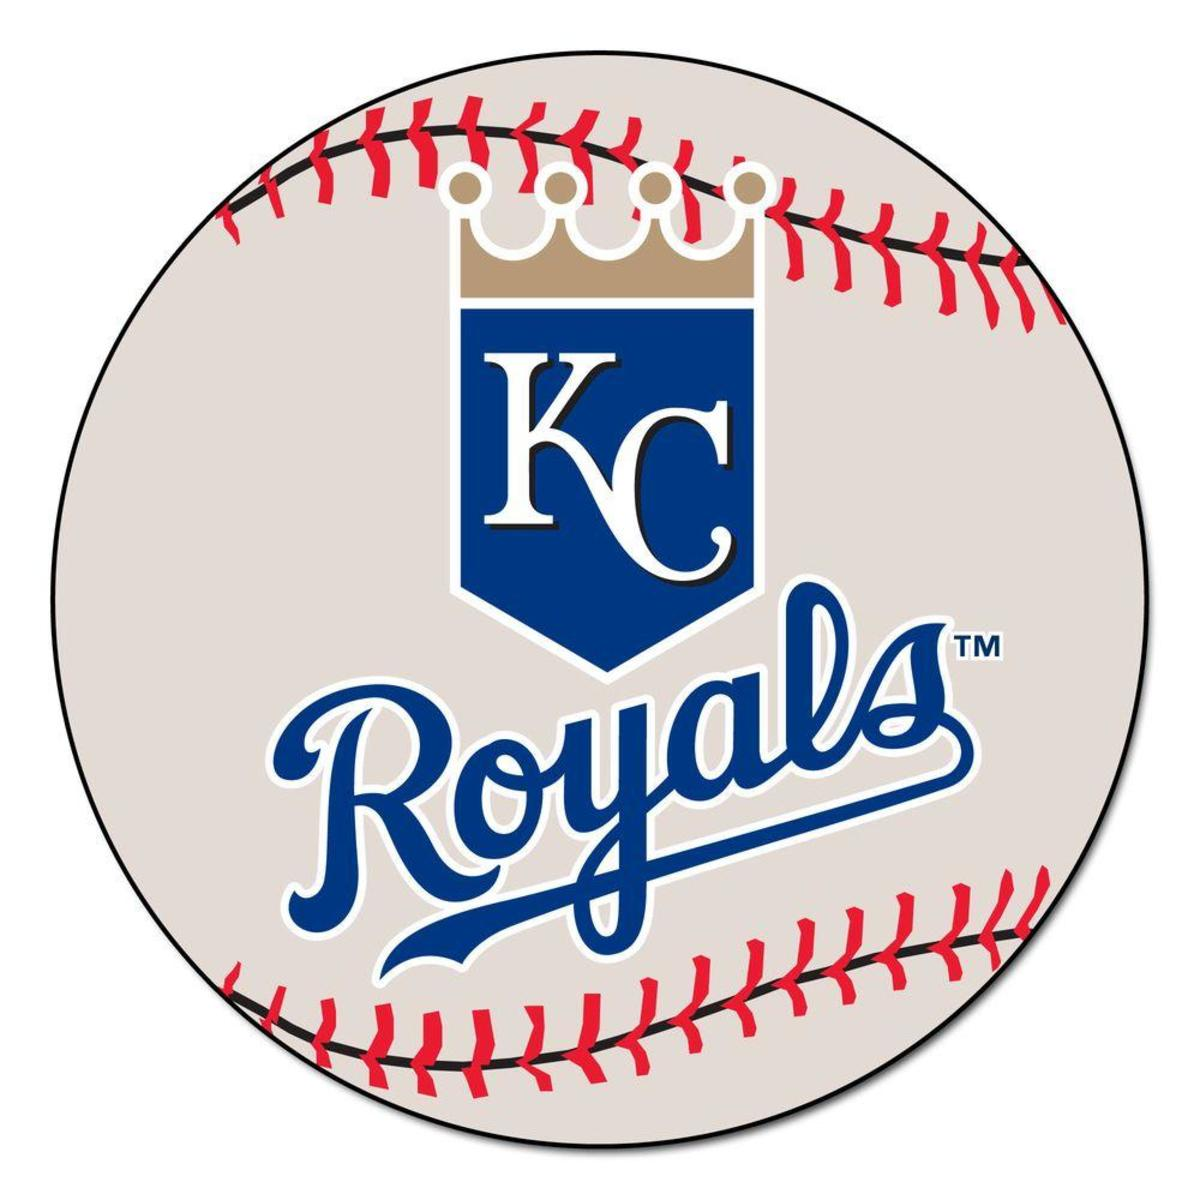 In 2015, the Kansas City Royals won the World Series by defeating the New York Mets in five games.